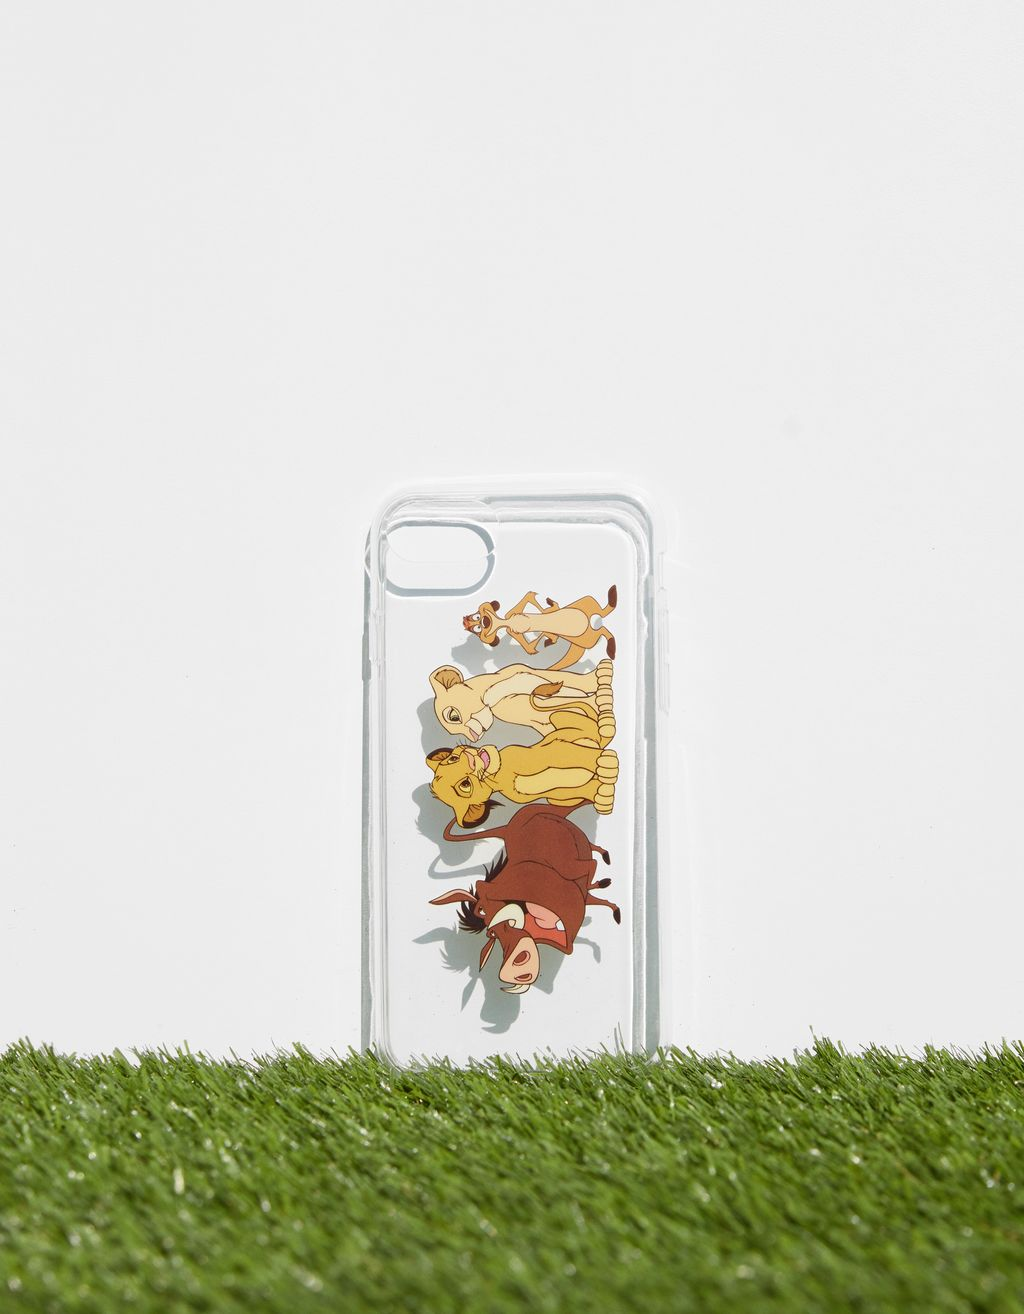 Lion King iPhone 6 / 7 / 8 case